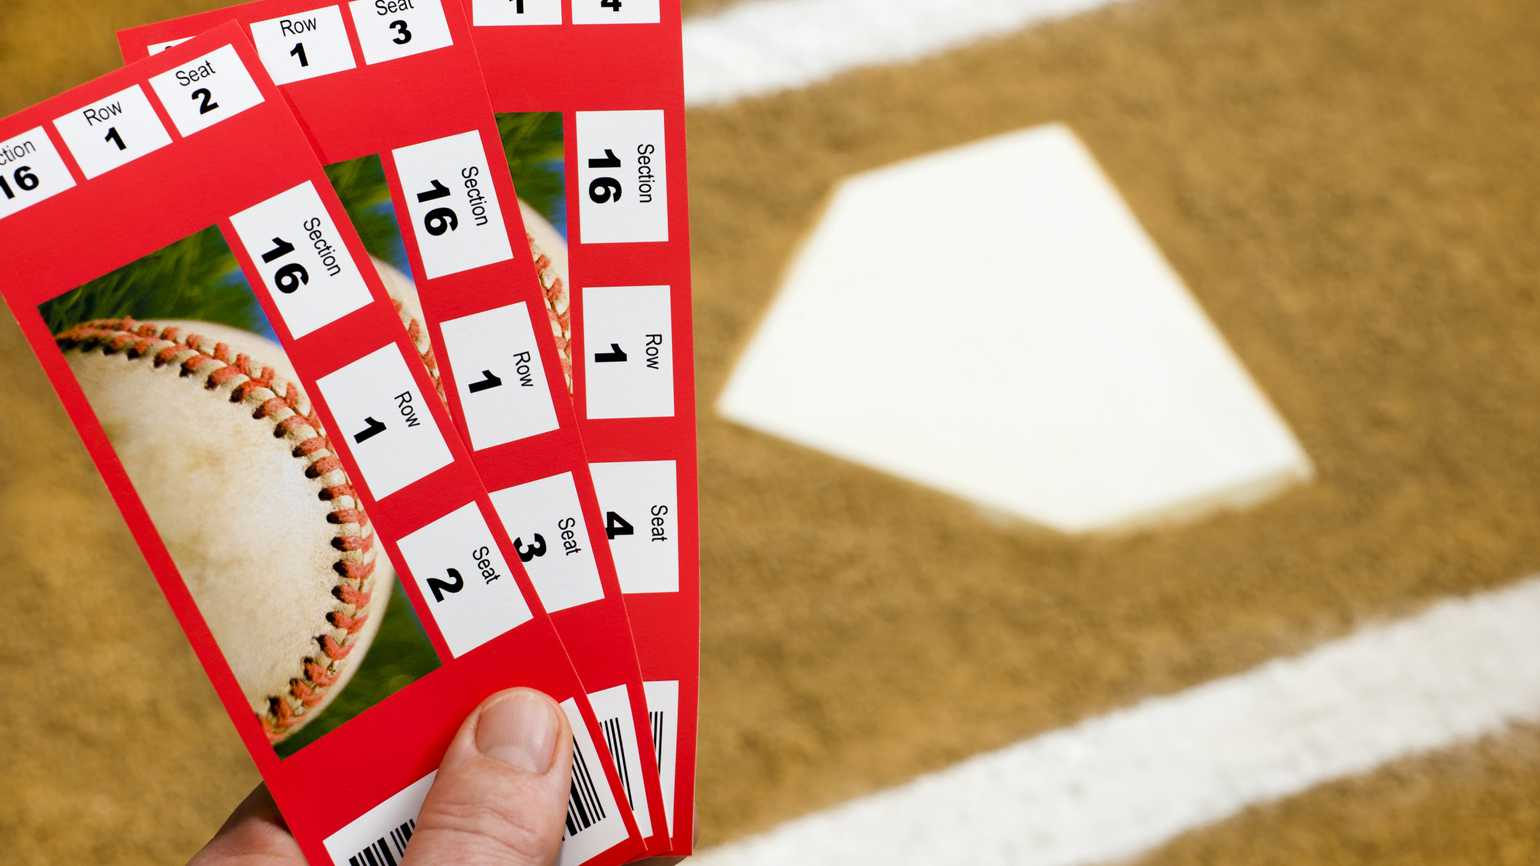 A Hand holding three baseball ticket stubs at home plate with the chalk lines of the batter's box